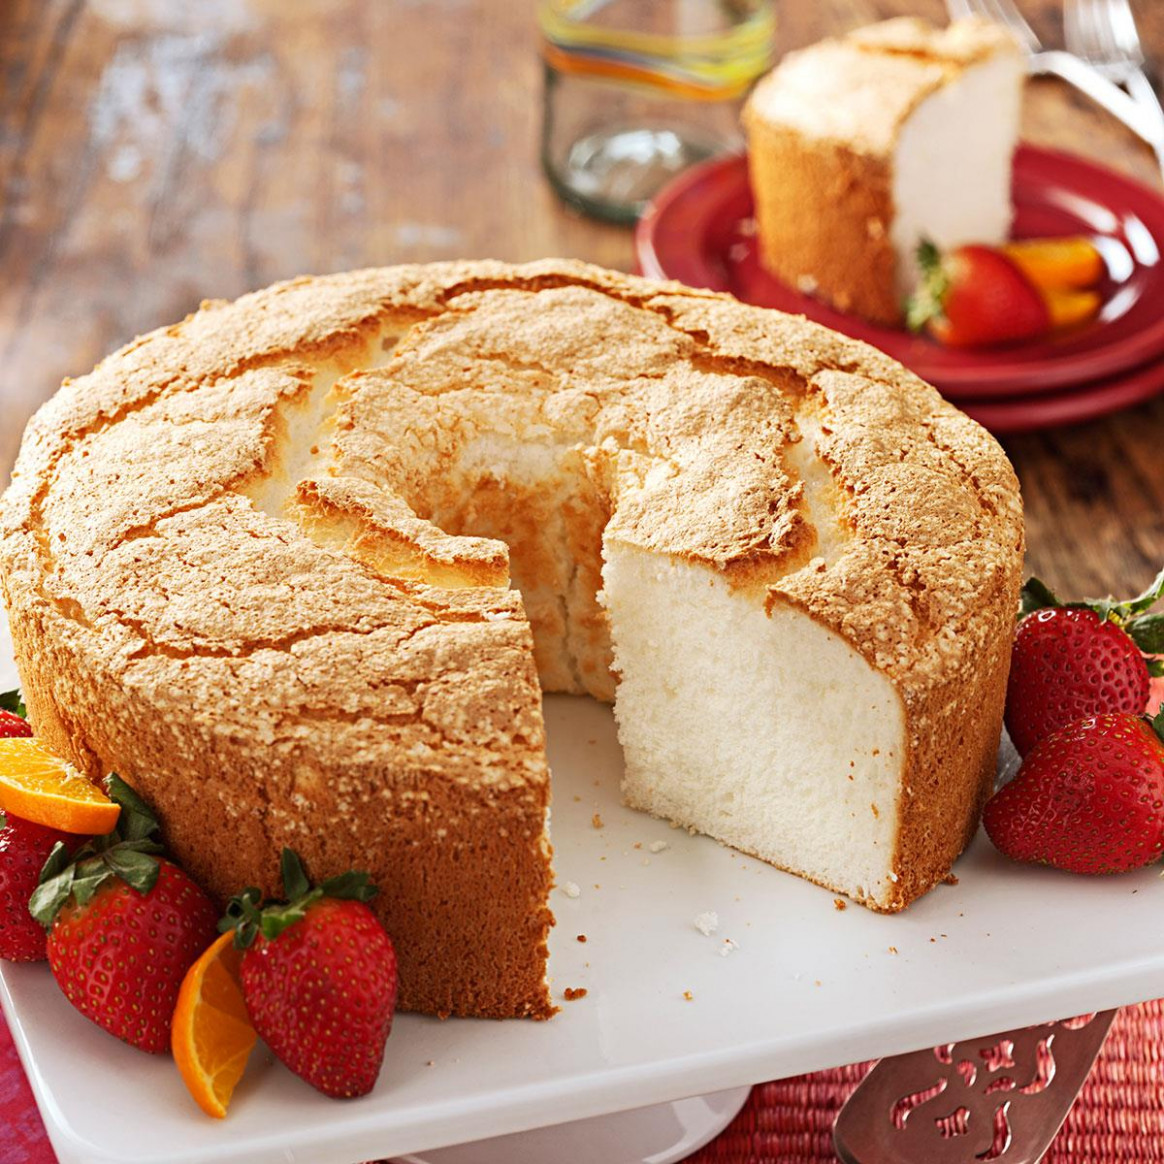 Best Angel Food Cake Recipe | Taste of Home - recipes with angel food cake mix